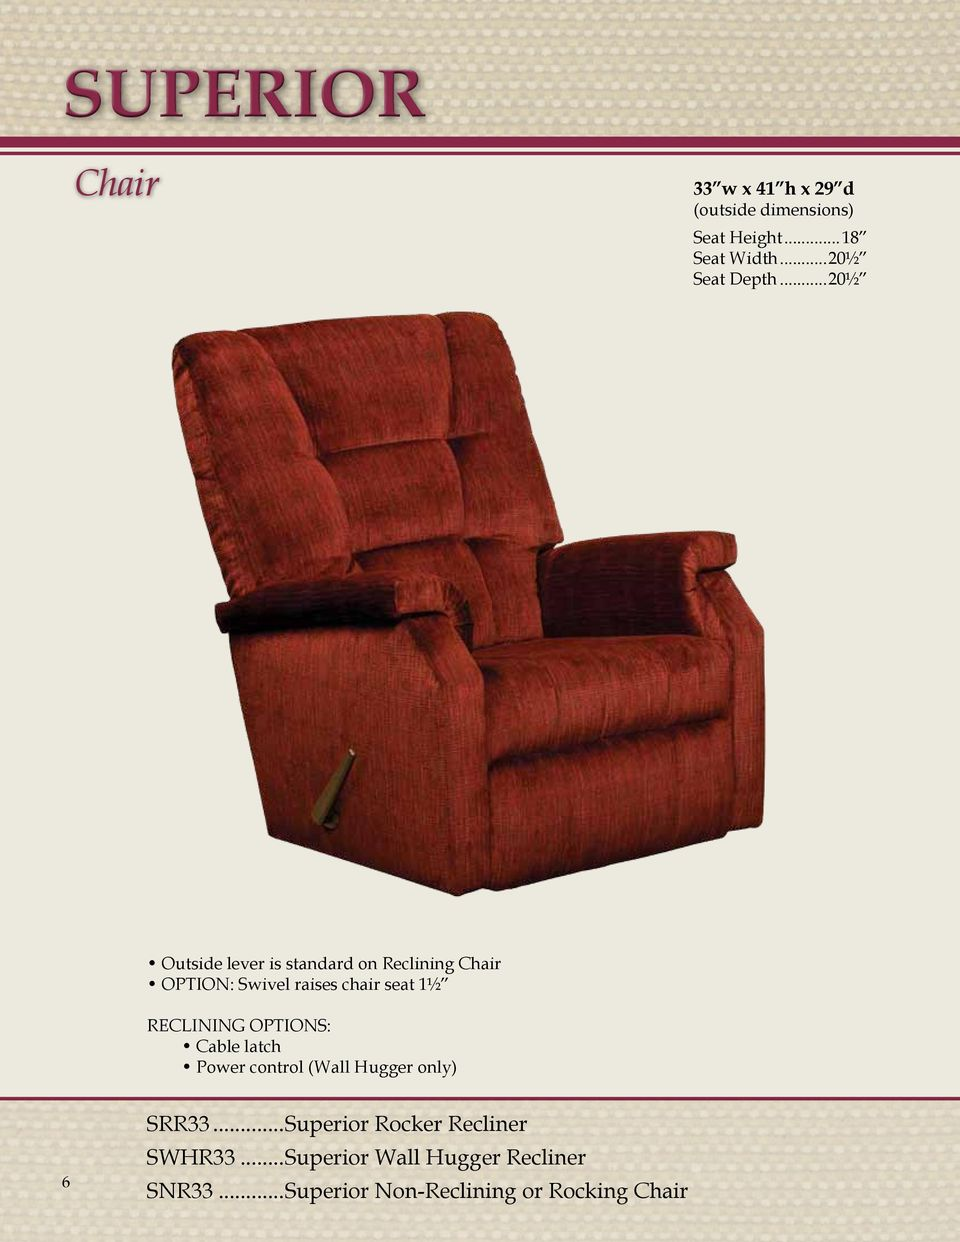 seat 1½ RECLINING OPTIONS: Cable latch Power control (Wall Hugger only) 6 SRR33.